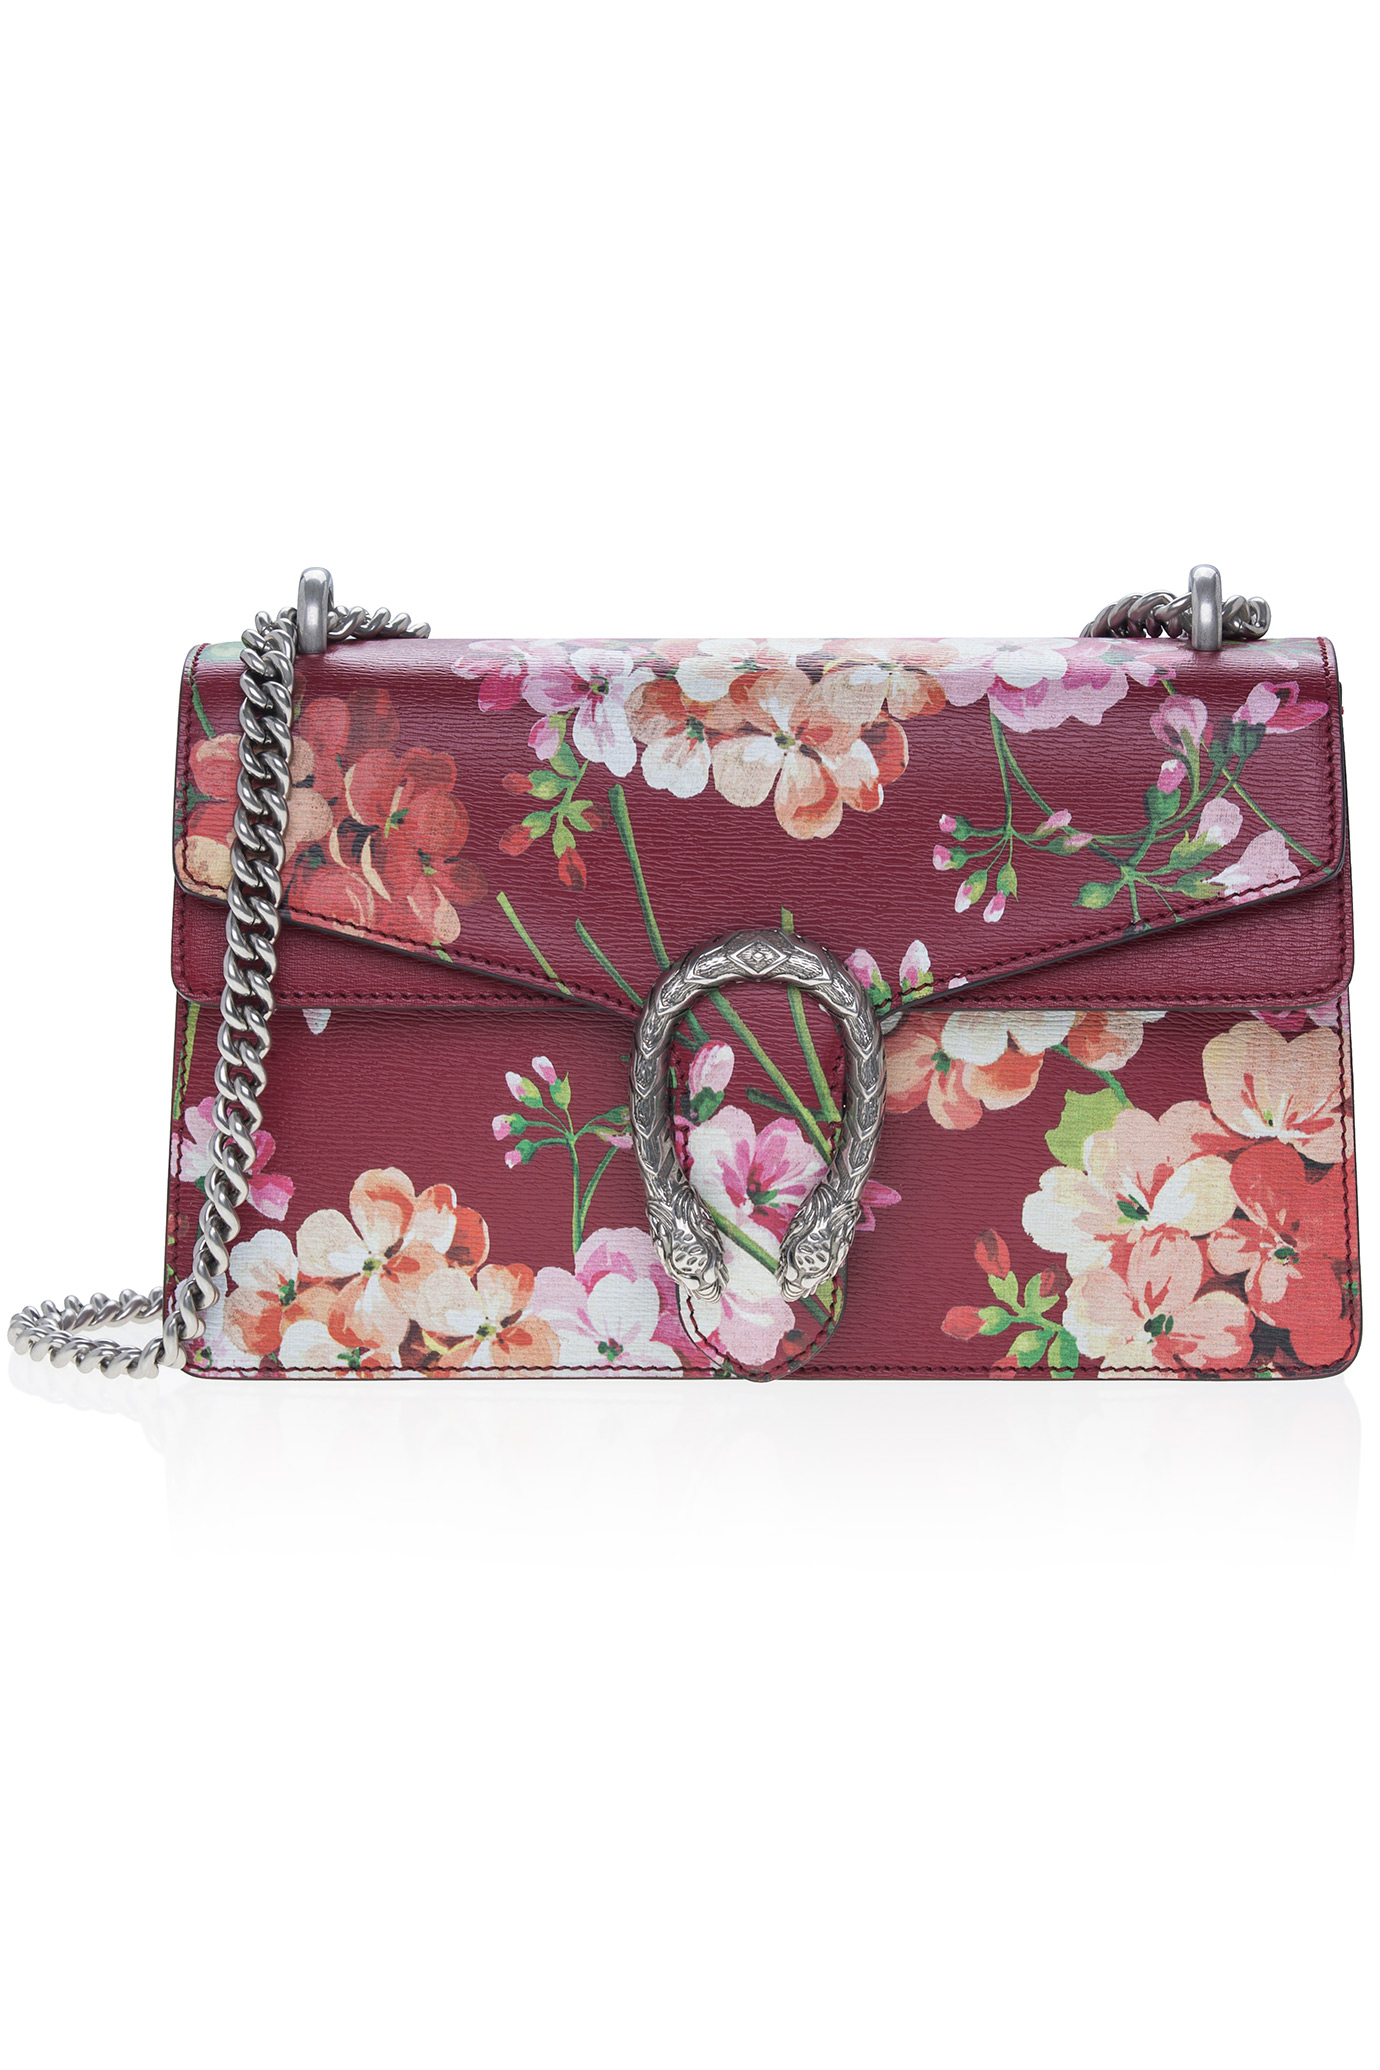 19d3663862b4 Gucci Dionysus Blooms Medium Size Bags | Stanford Center for ...